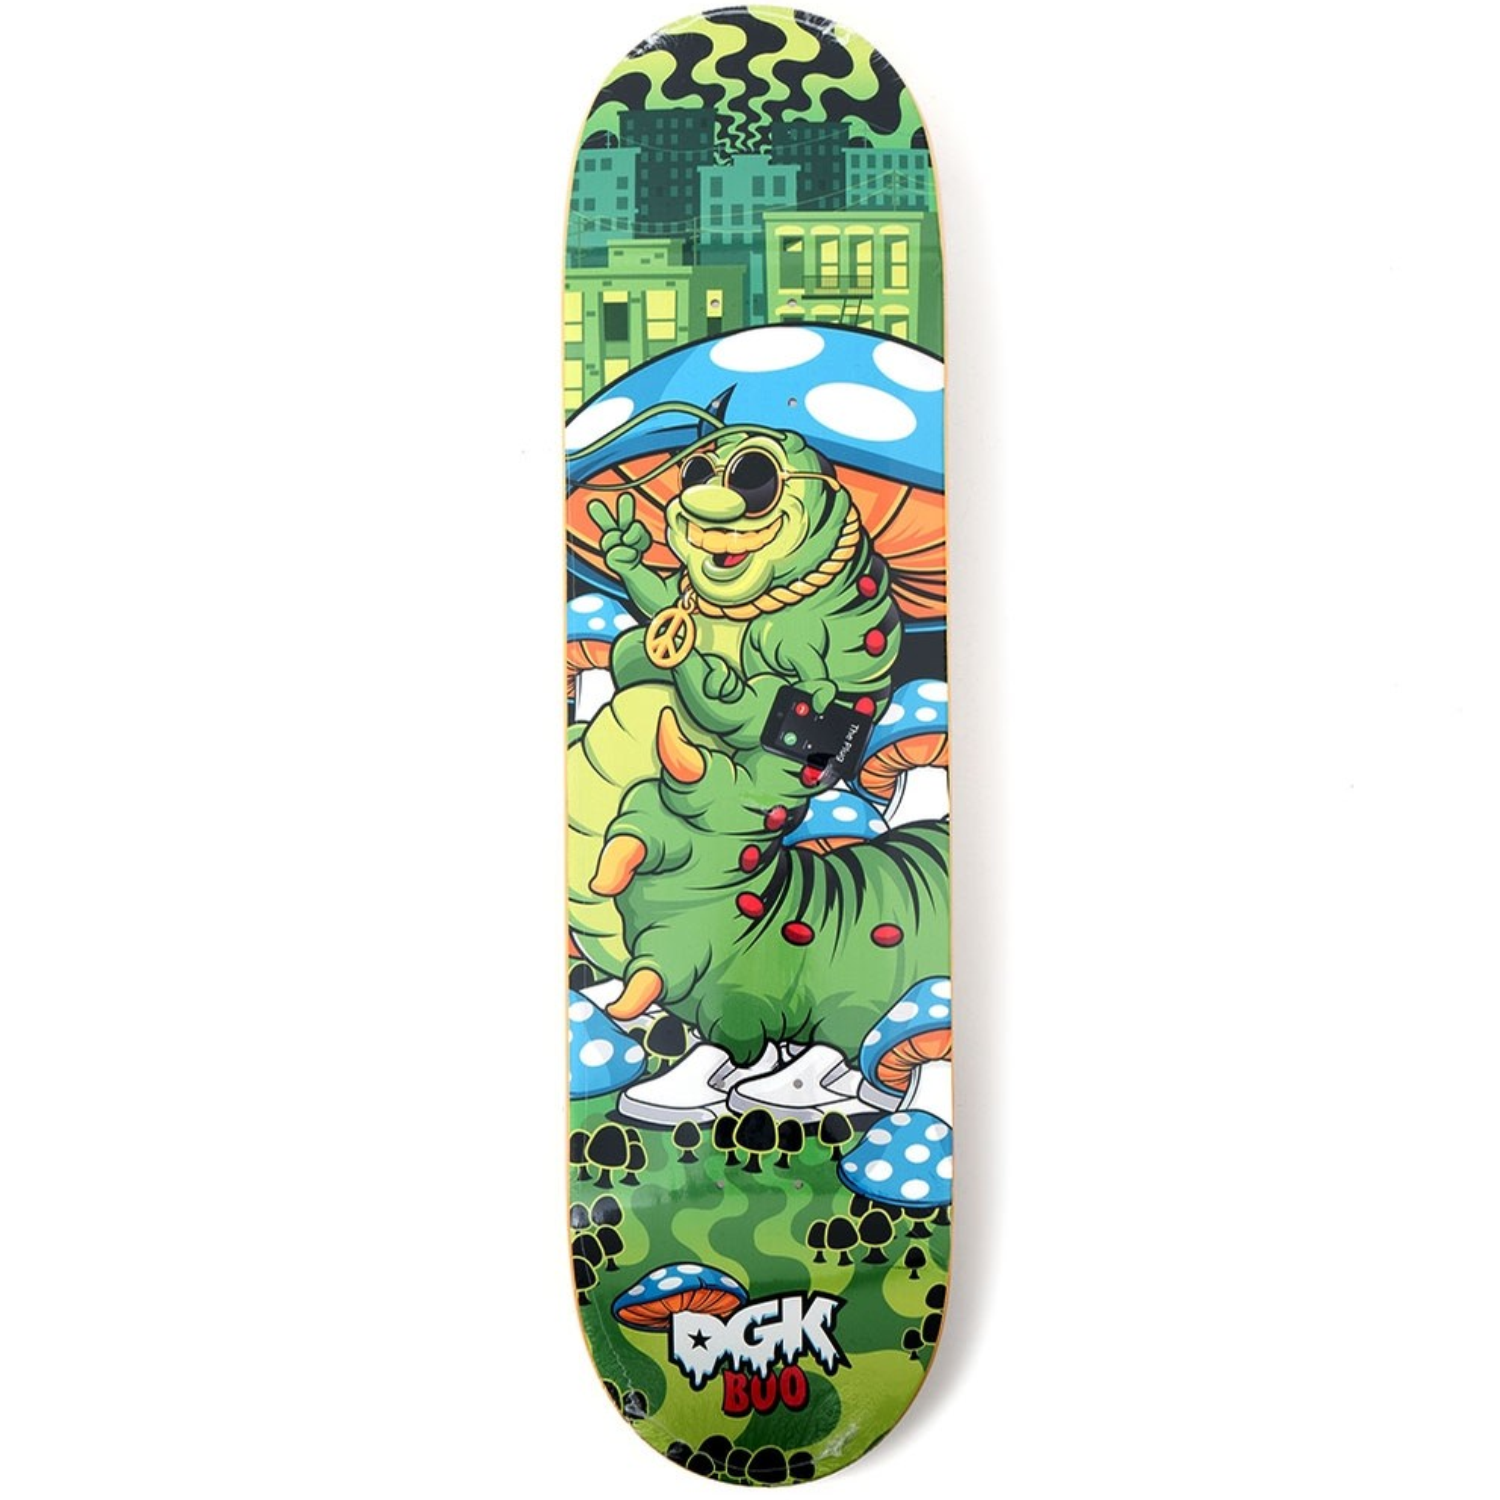 Tabla DGK Ghetto Land Boo - 8.25""